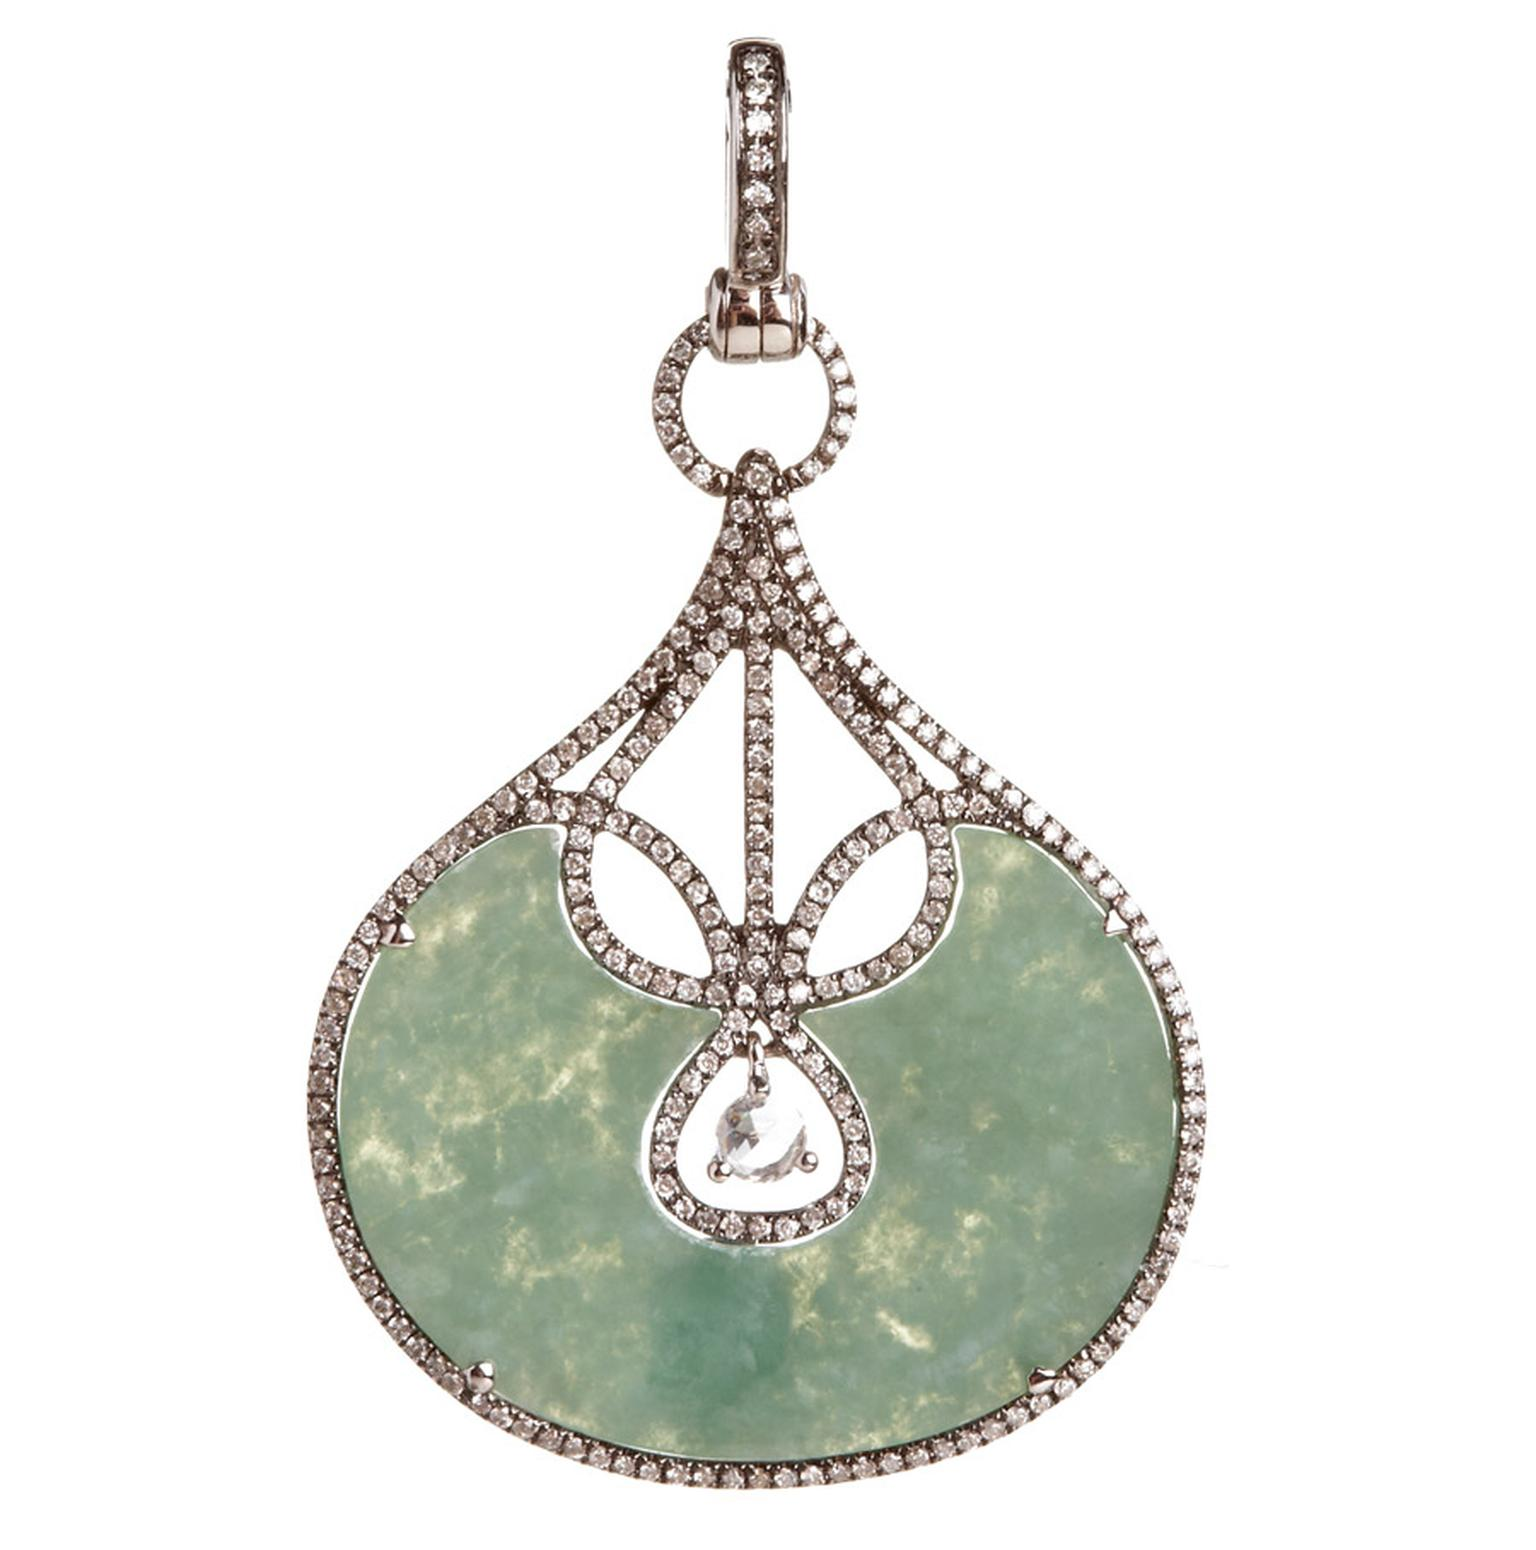 Annoushka-18ct-white-gold-diamond-and-jade-Alhambra-pendant.jpg